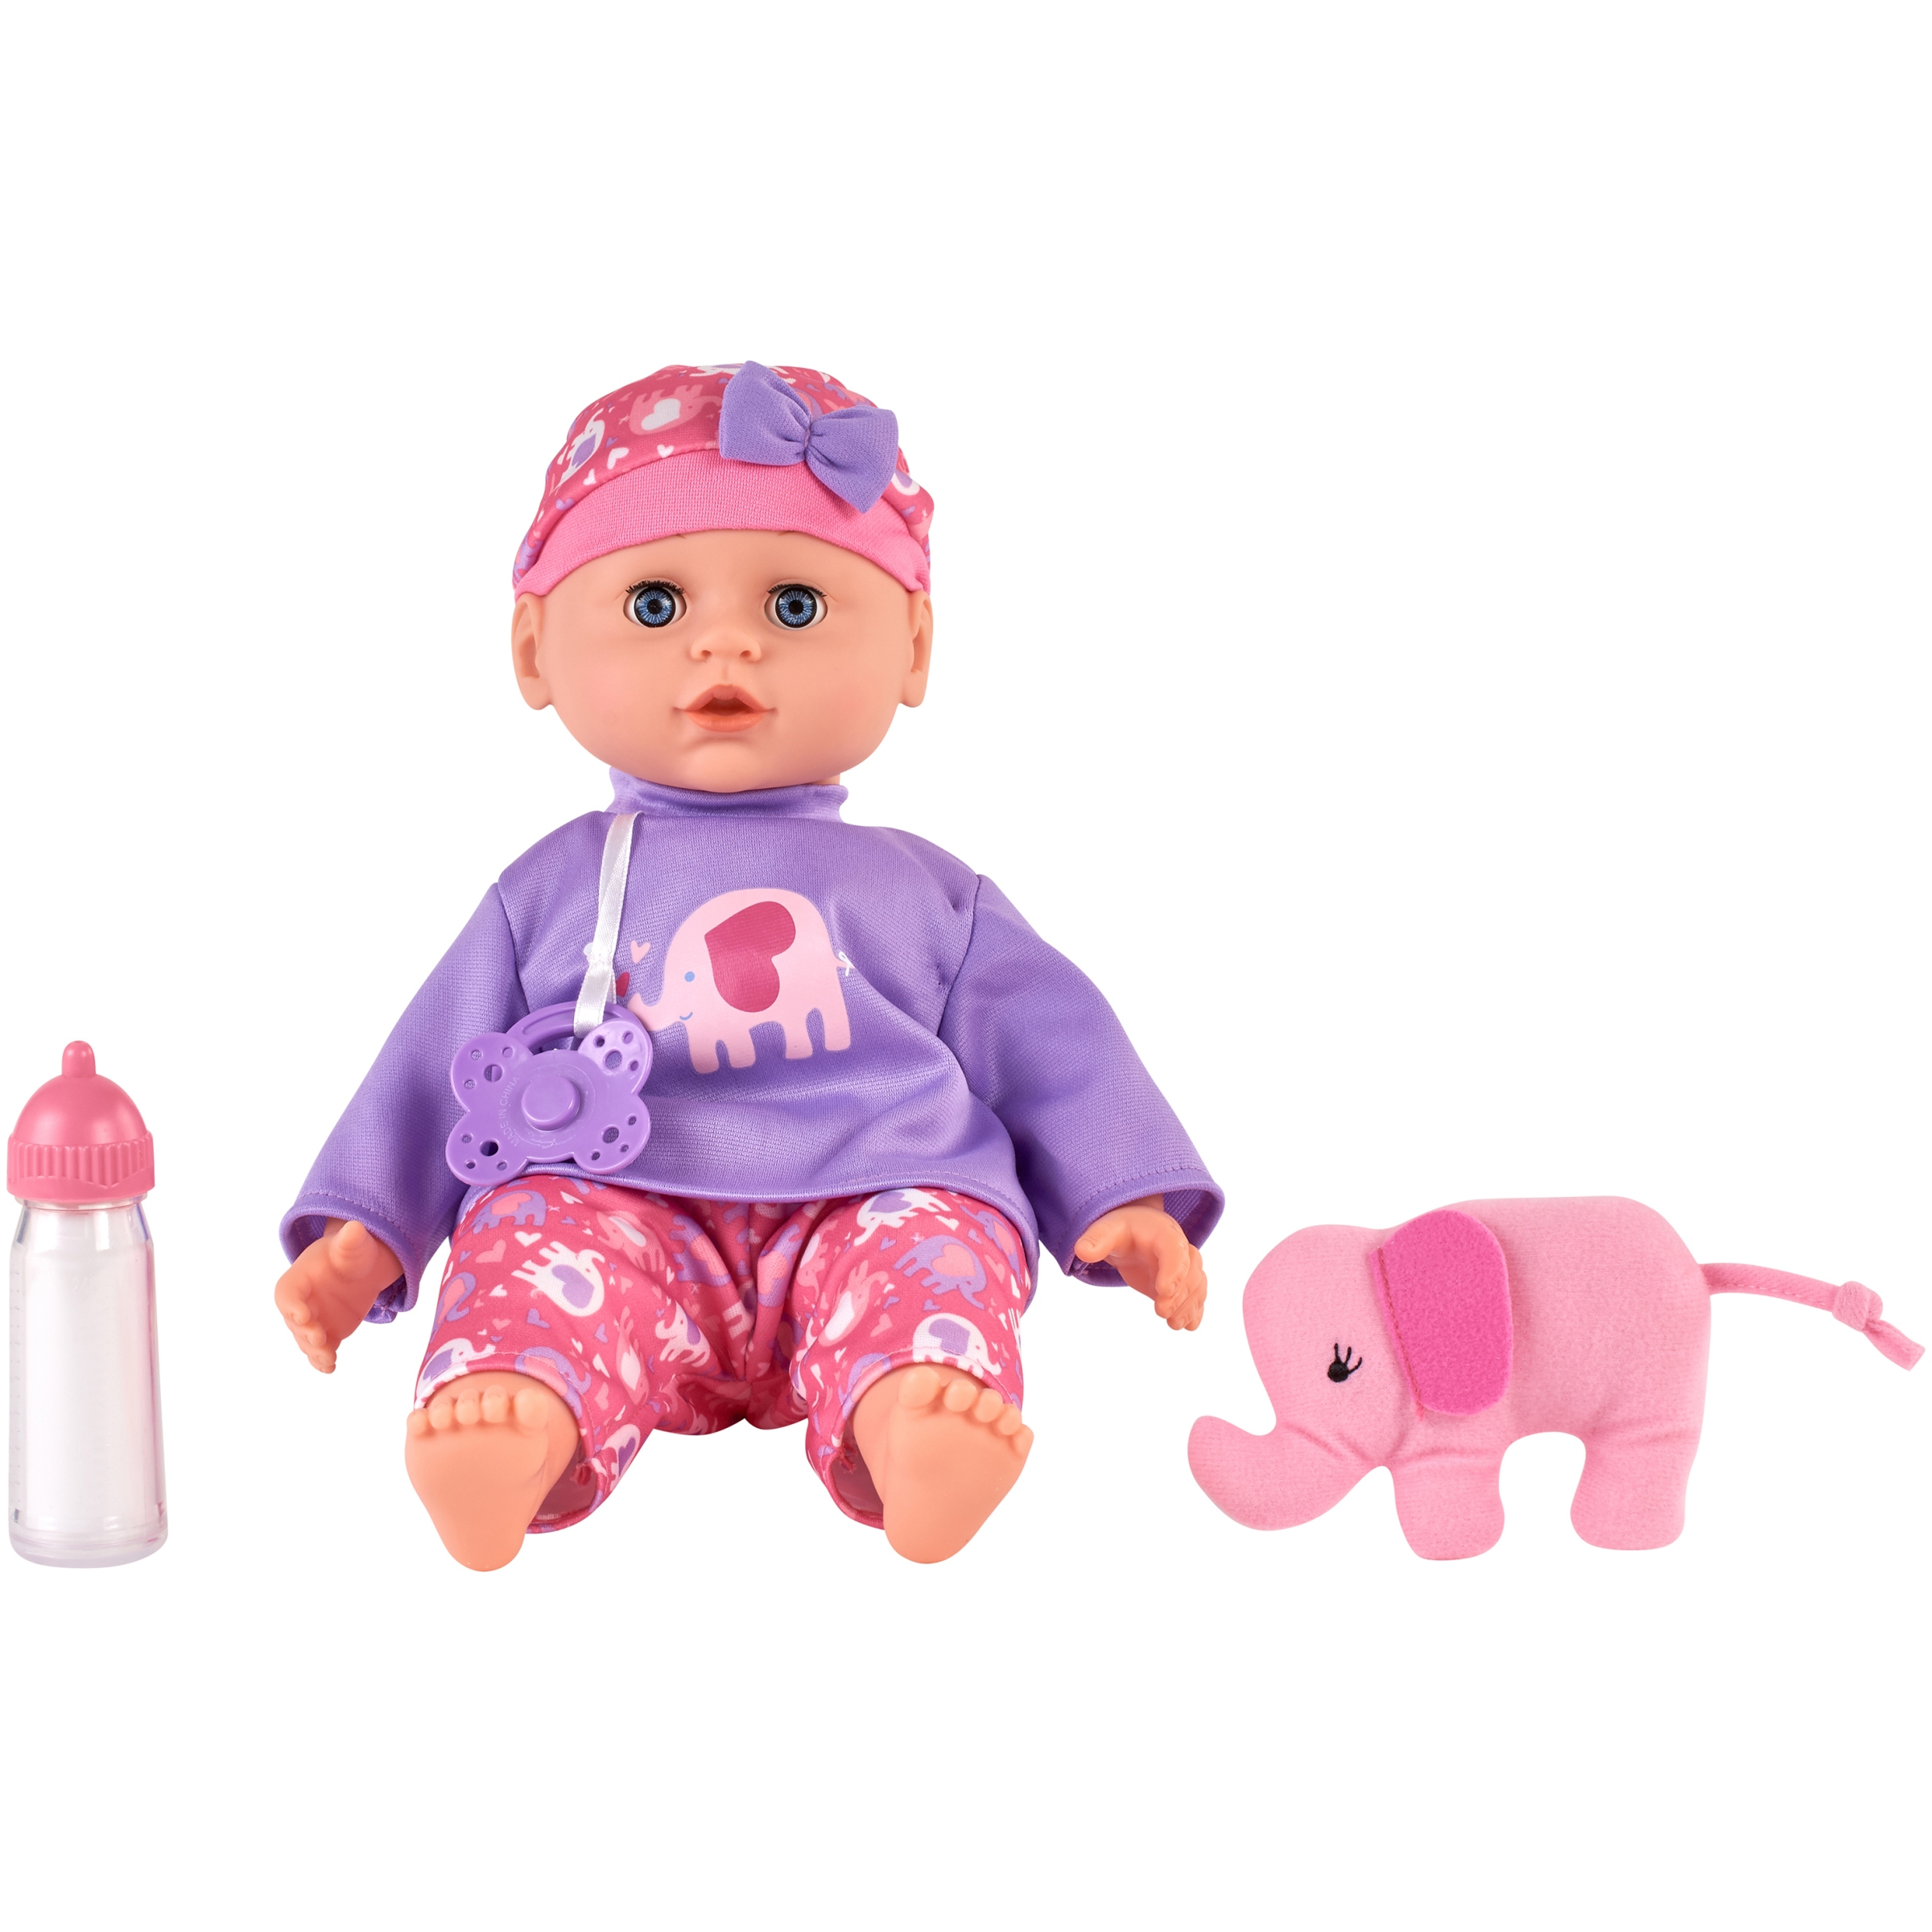 My Sweet Love Elephant Baby Maggie Doll, Pink, Designed for Ages 2 and Up